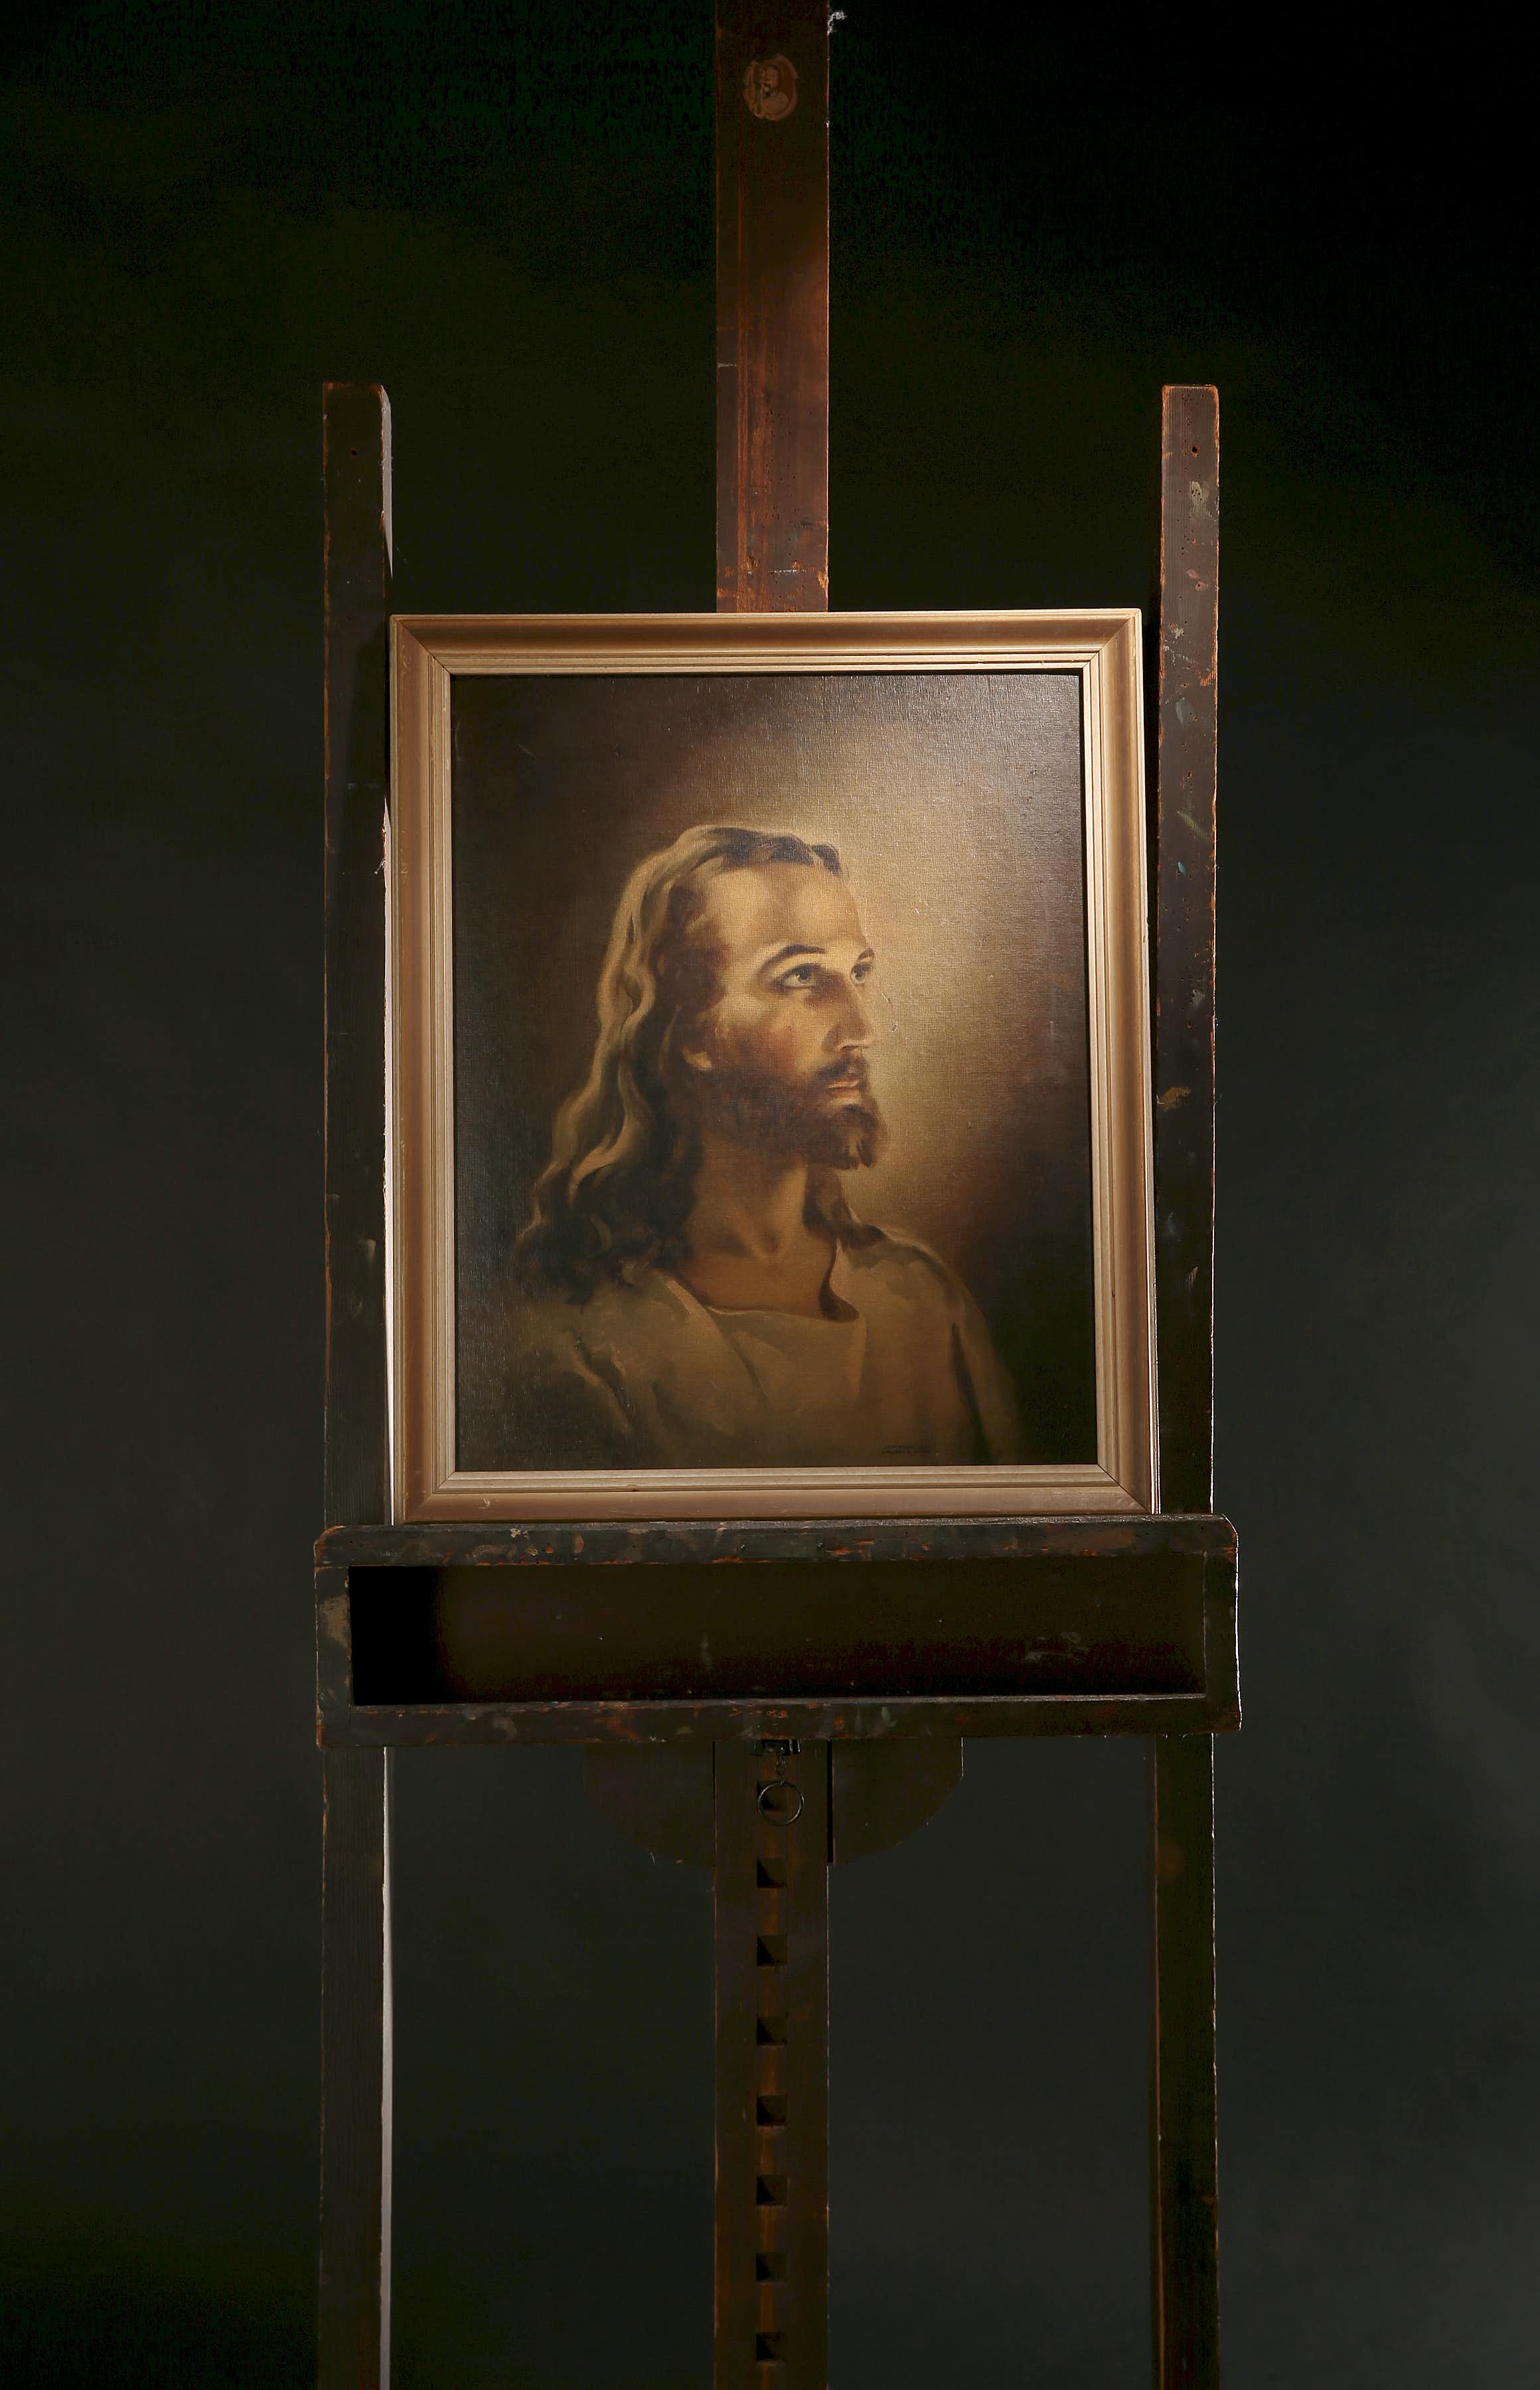 Much-beloved, much-maligned 'Head of Christ' has graced many walls — and now a Dallas museum